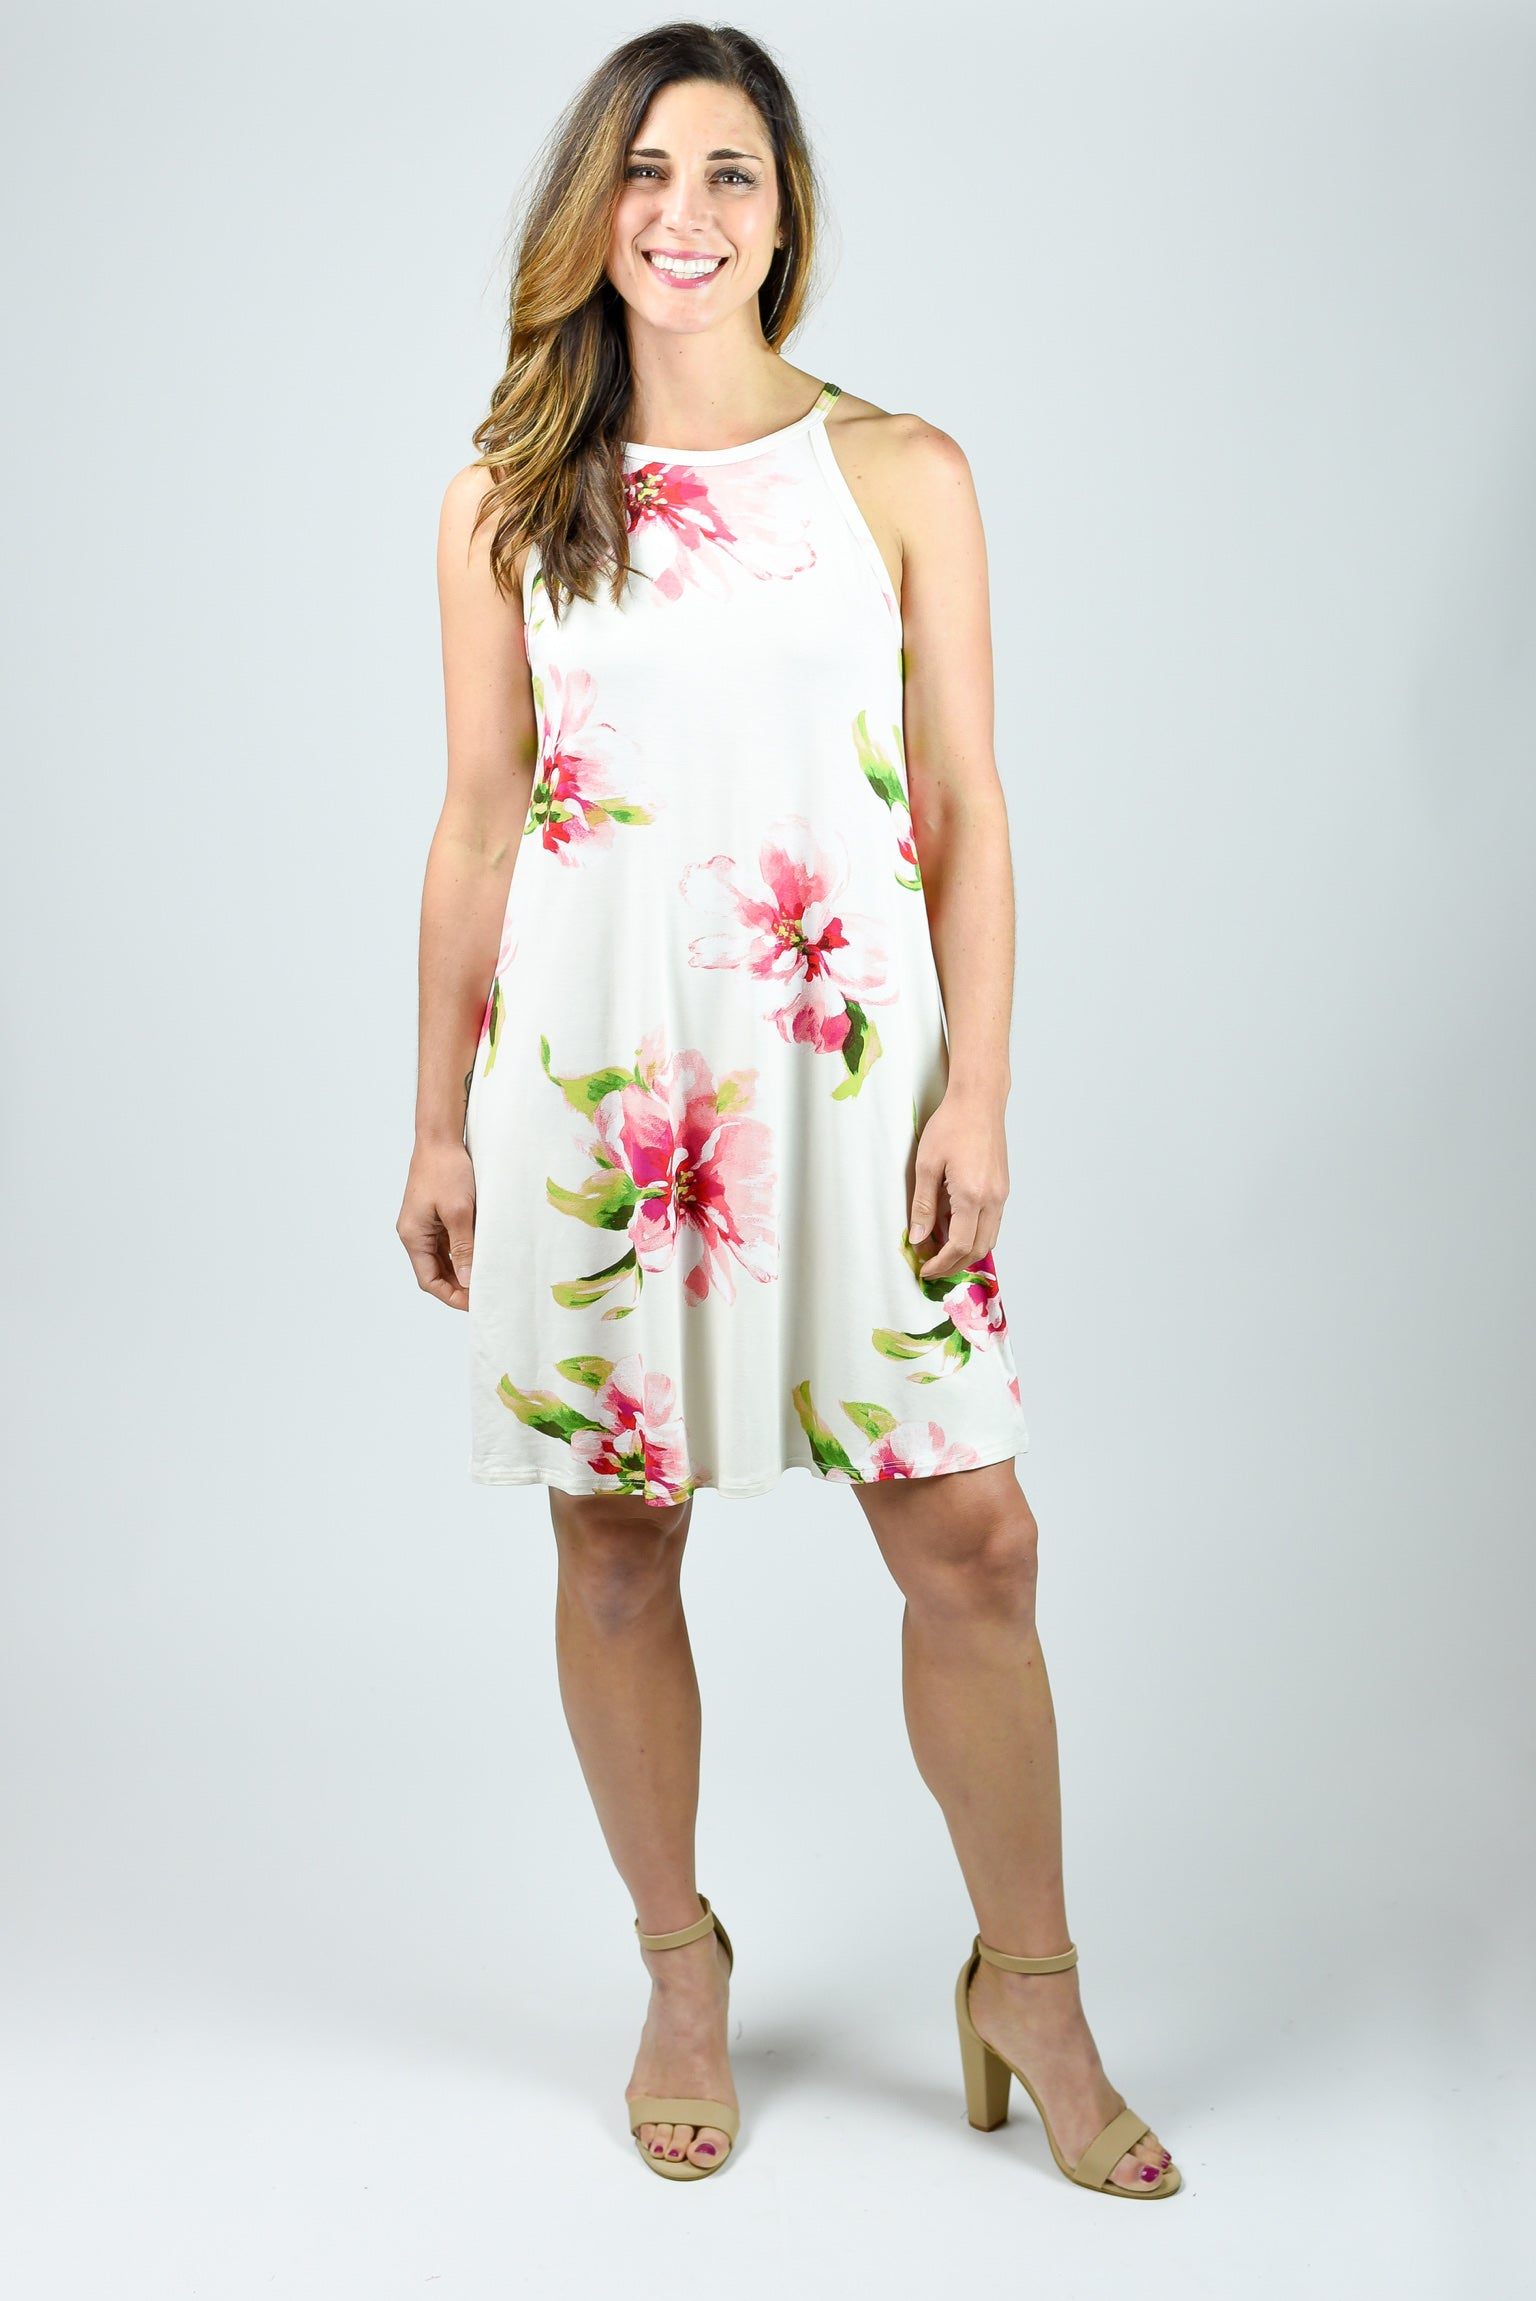 Bouquet Babe Ivory Floral Halter Dress